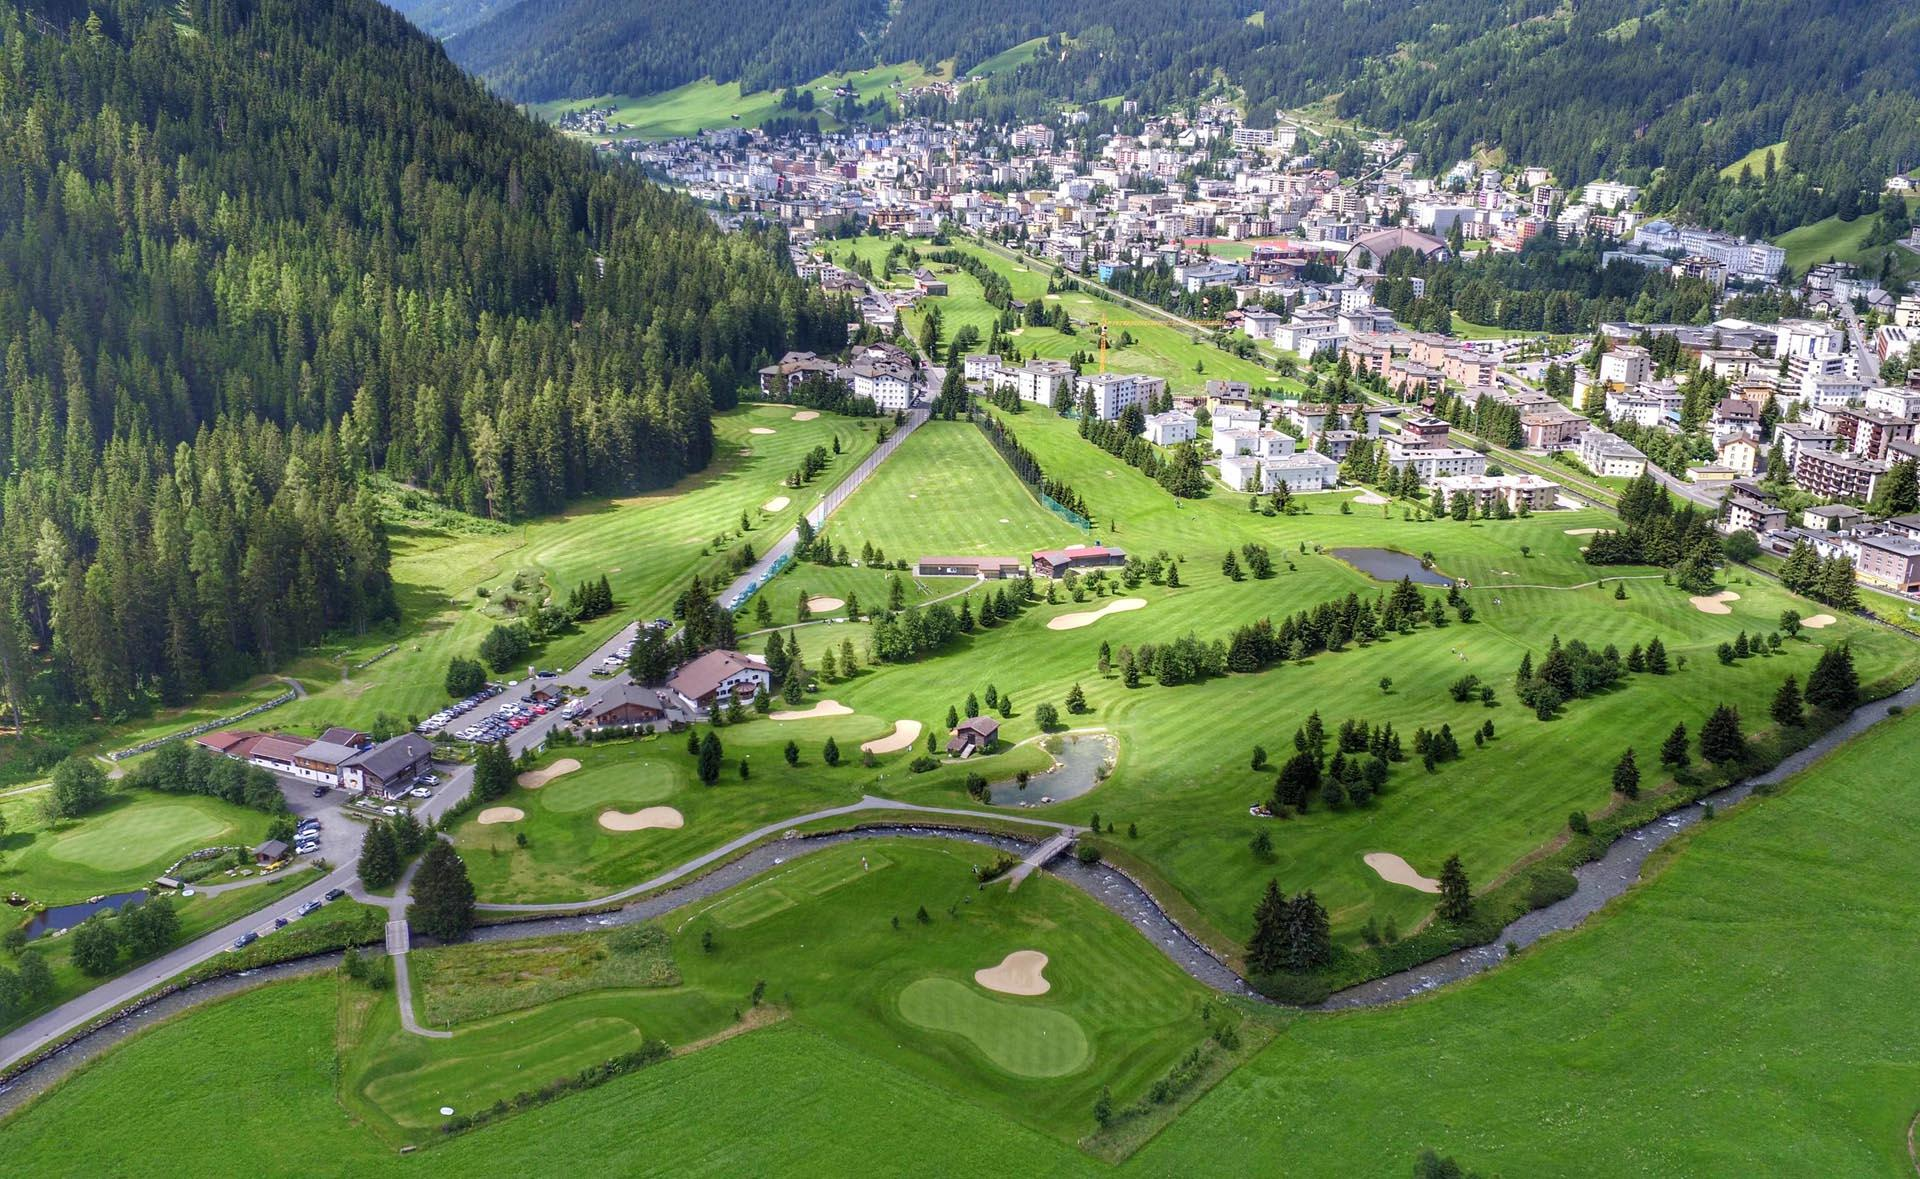 View of the golf courses in Davos Klosters